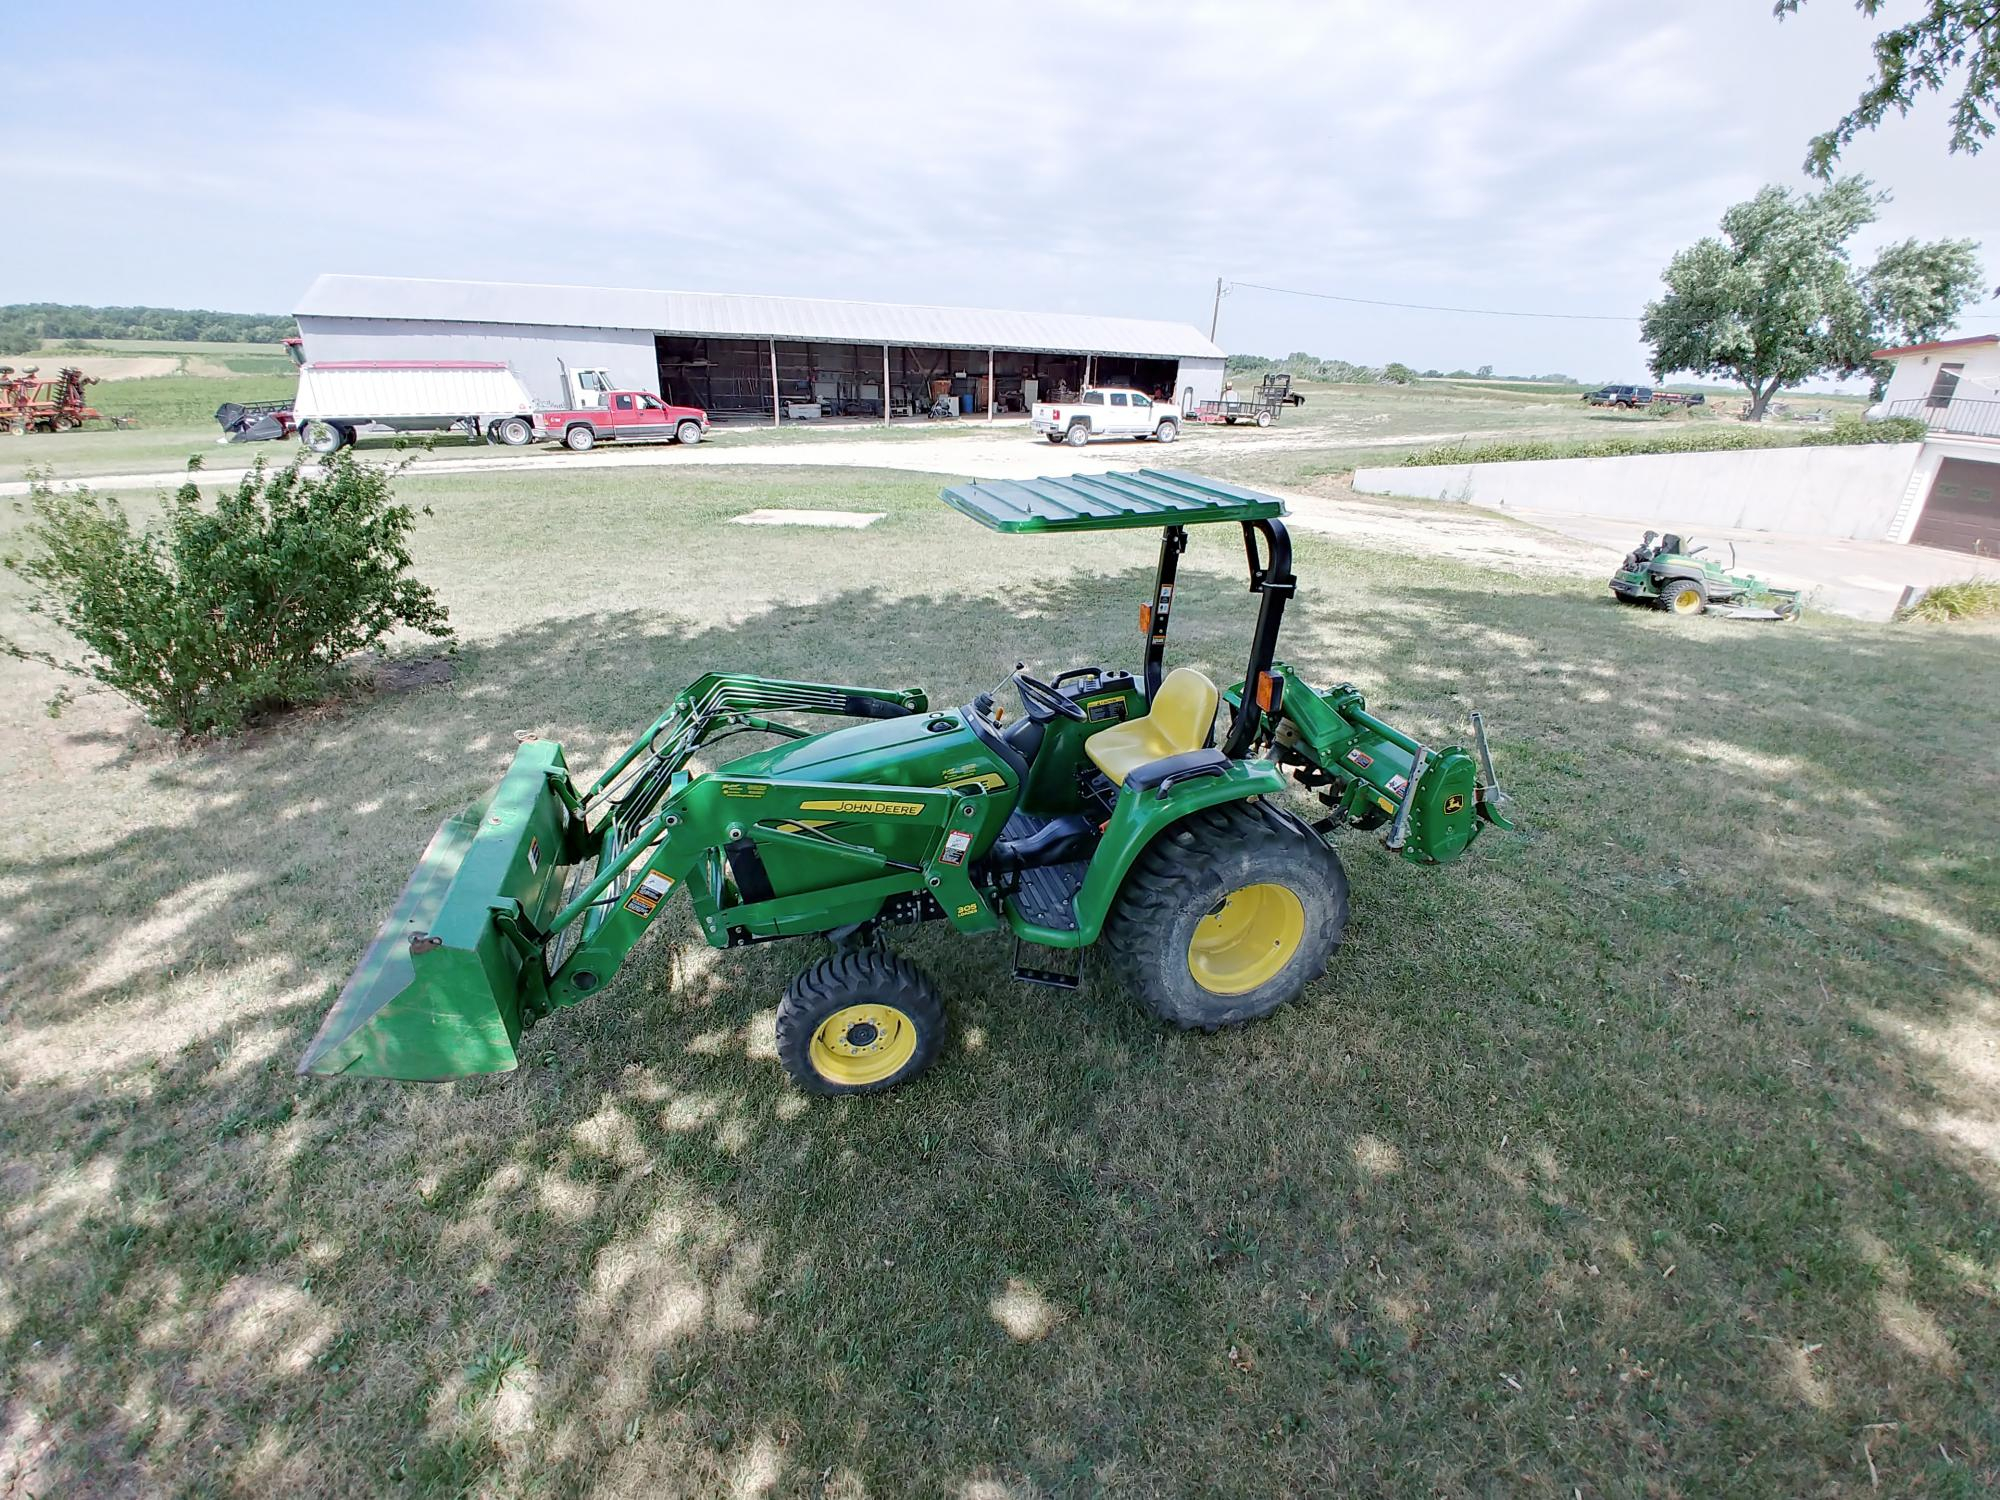 John Deere Tractor - SunGuard tractor canopies and mower canopies fit most major brands.